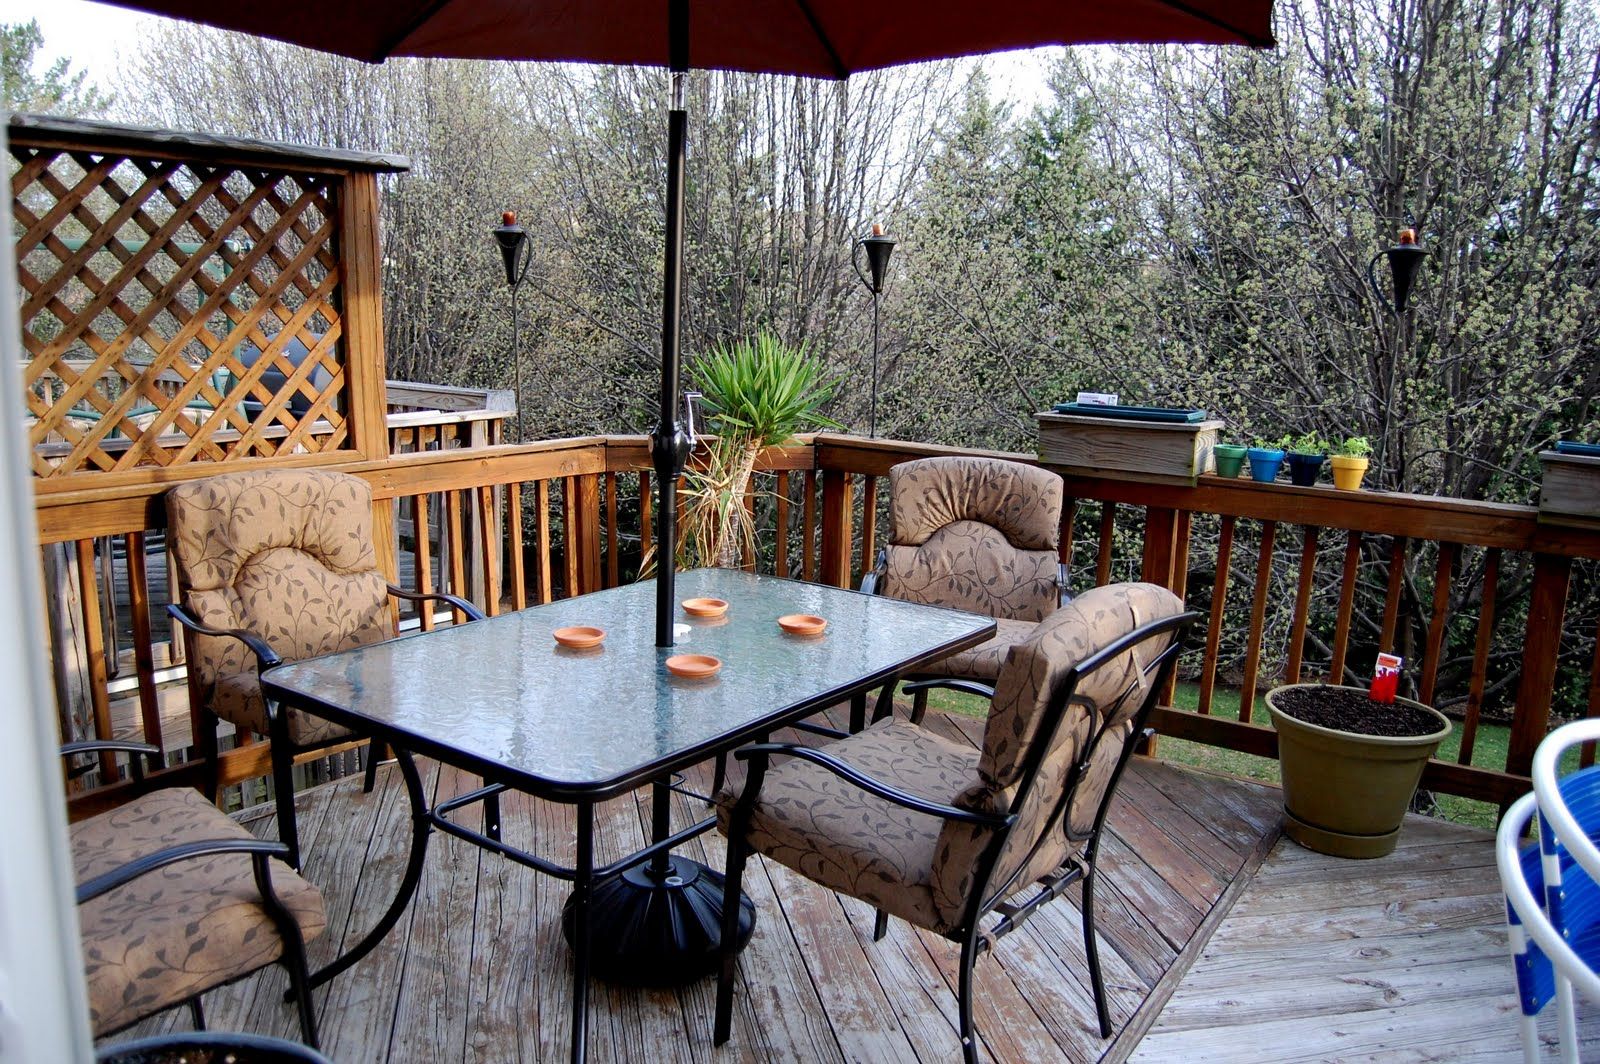 Big Lots Patio Sets | Patio Design Ideas on Outdoor Sectional Big Lots id=70497